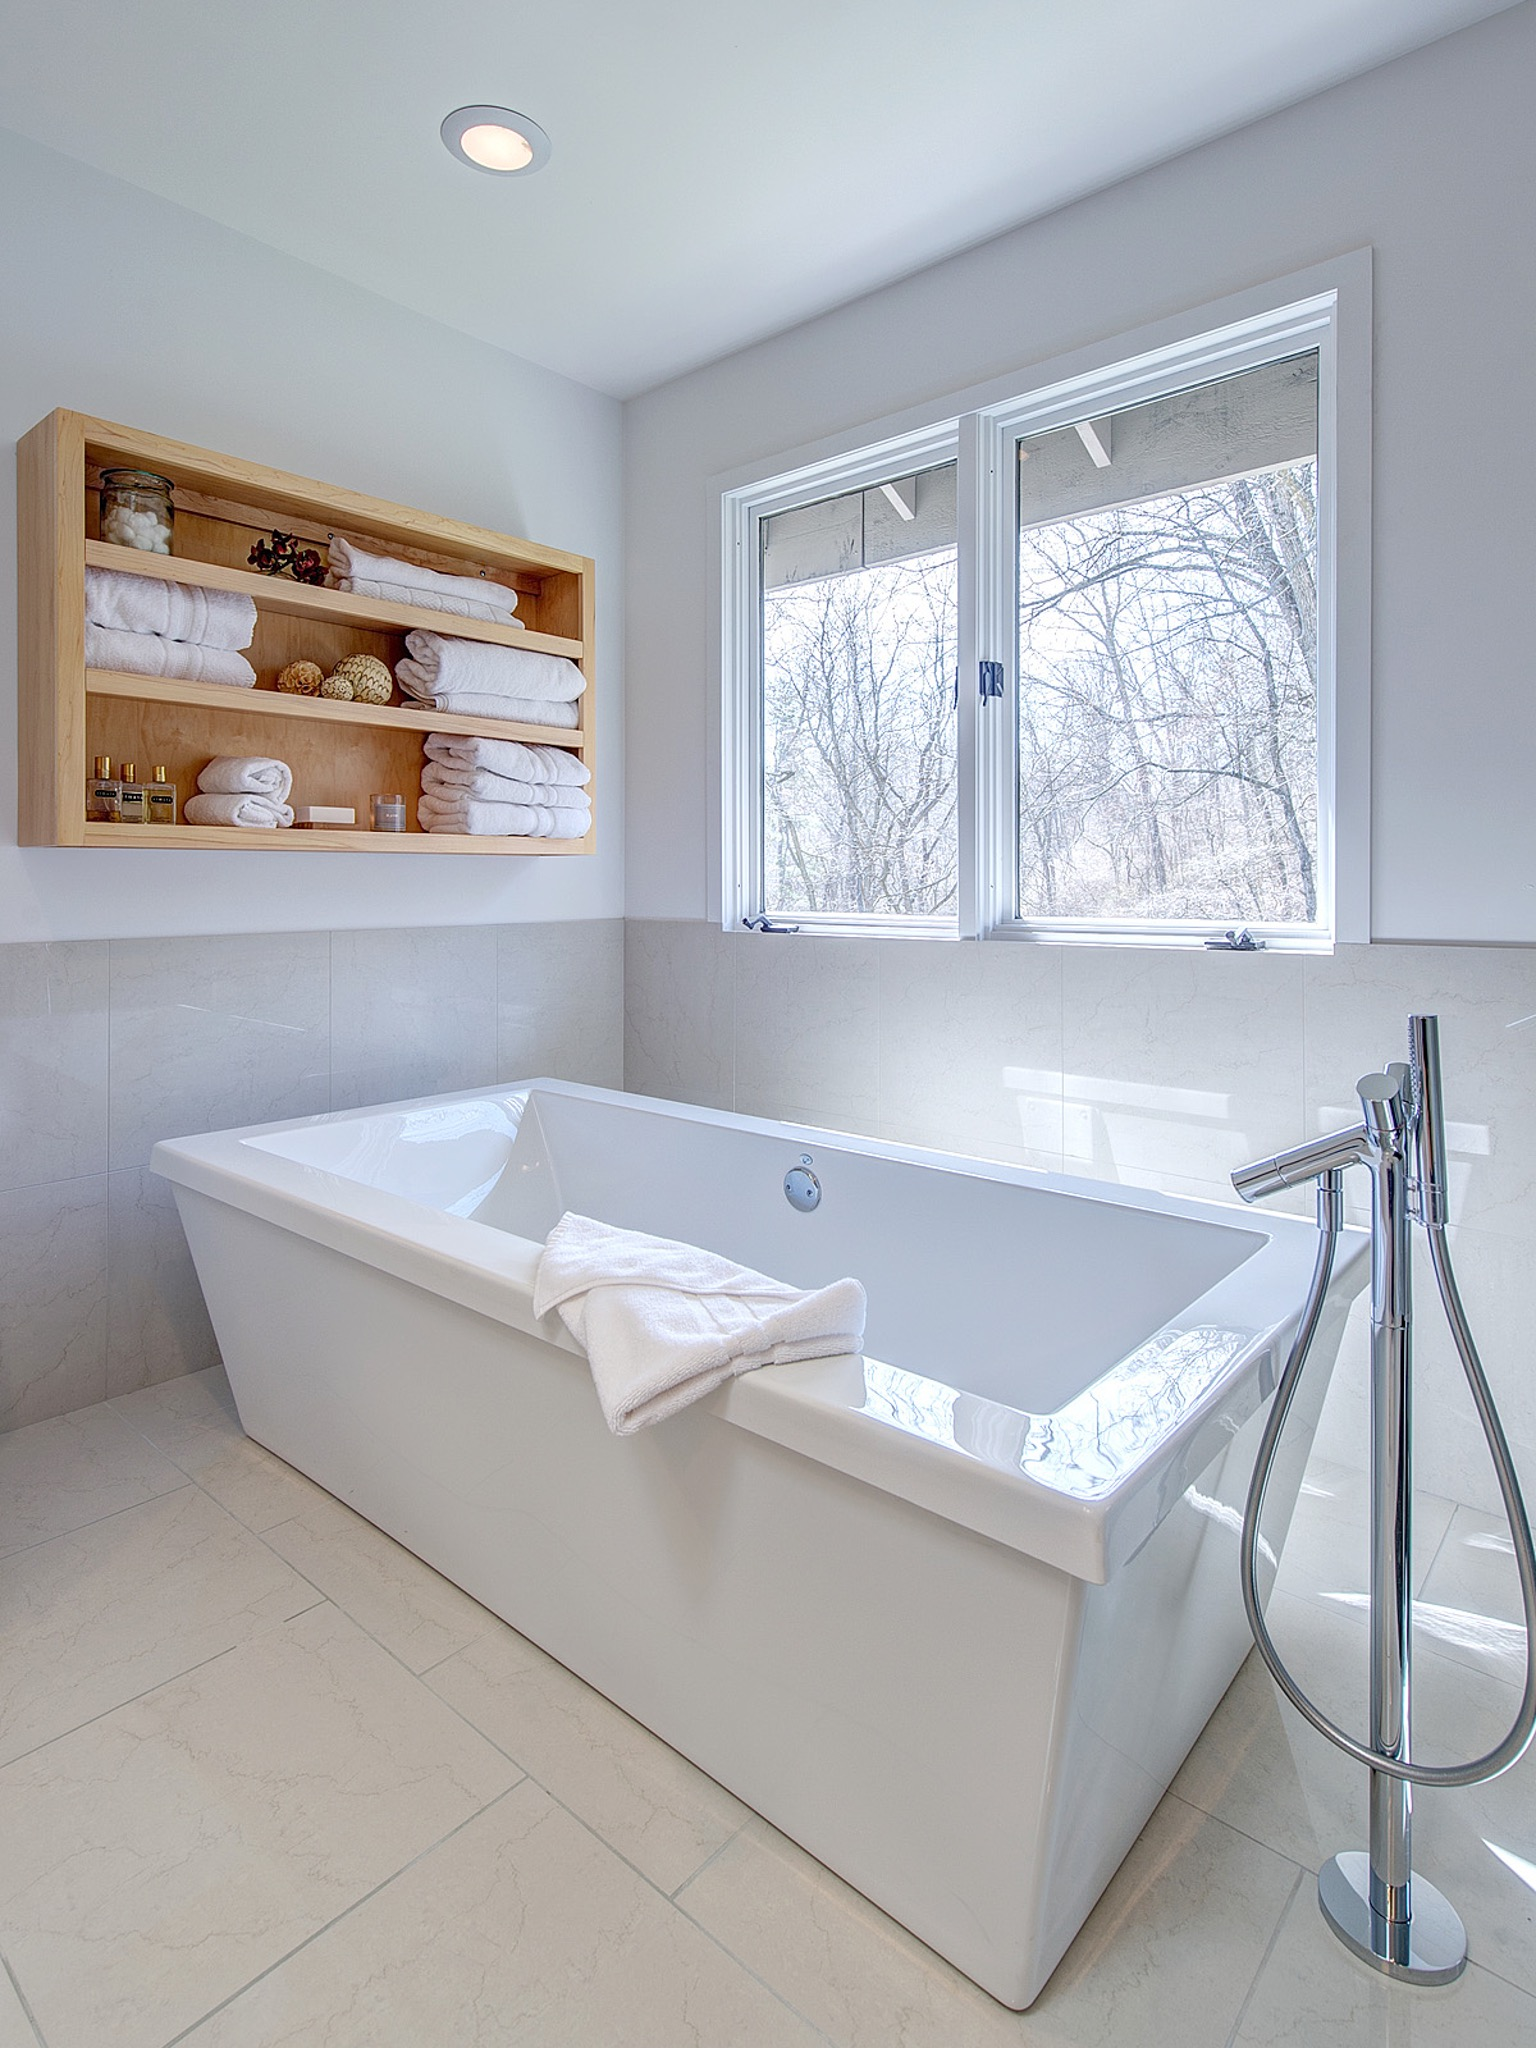 Freestanding Tub And Shower Combo In Contemporary White Bathroom (View 12 of 19)